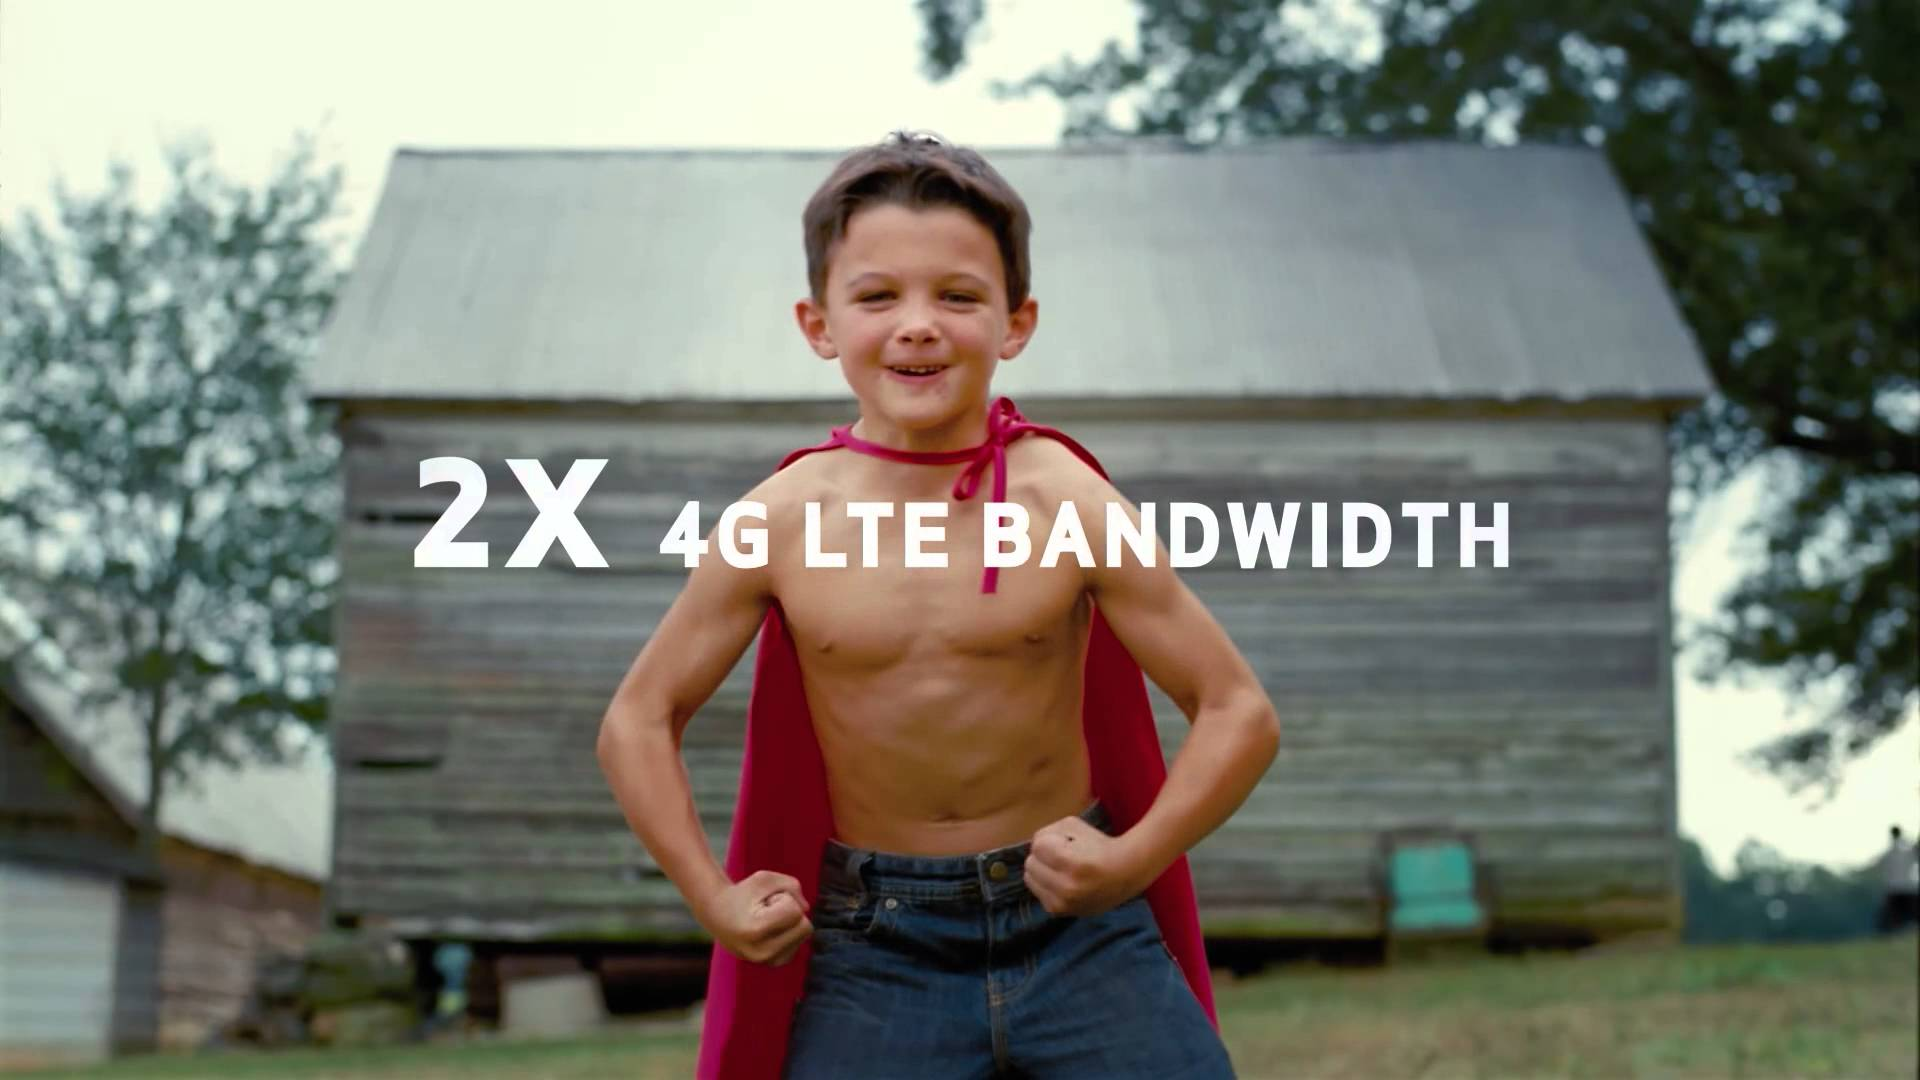 Verizon Announces XLTE